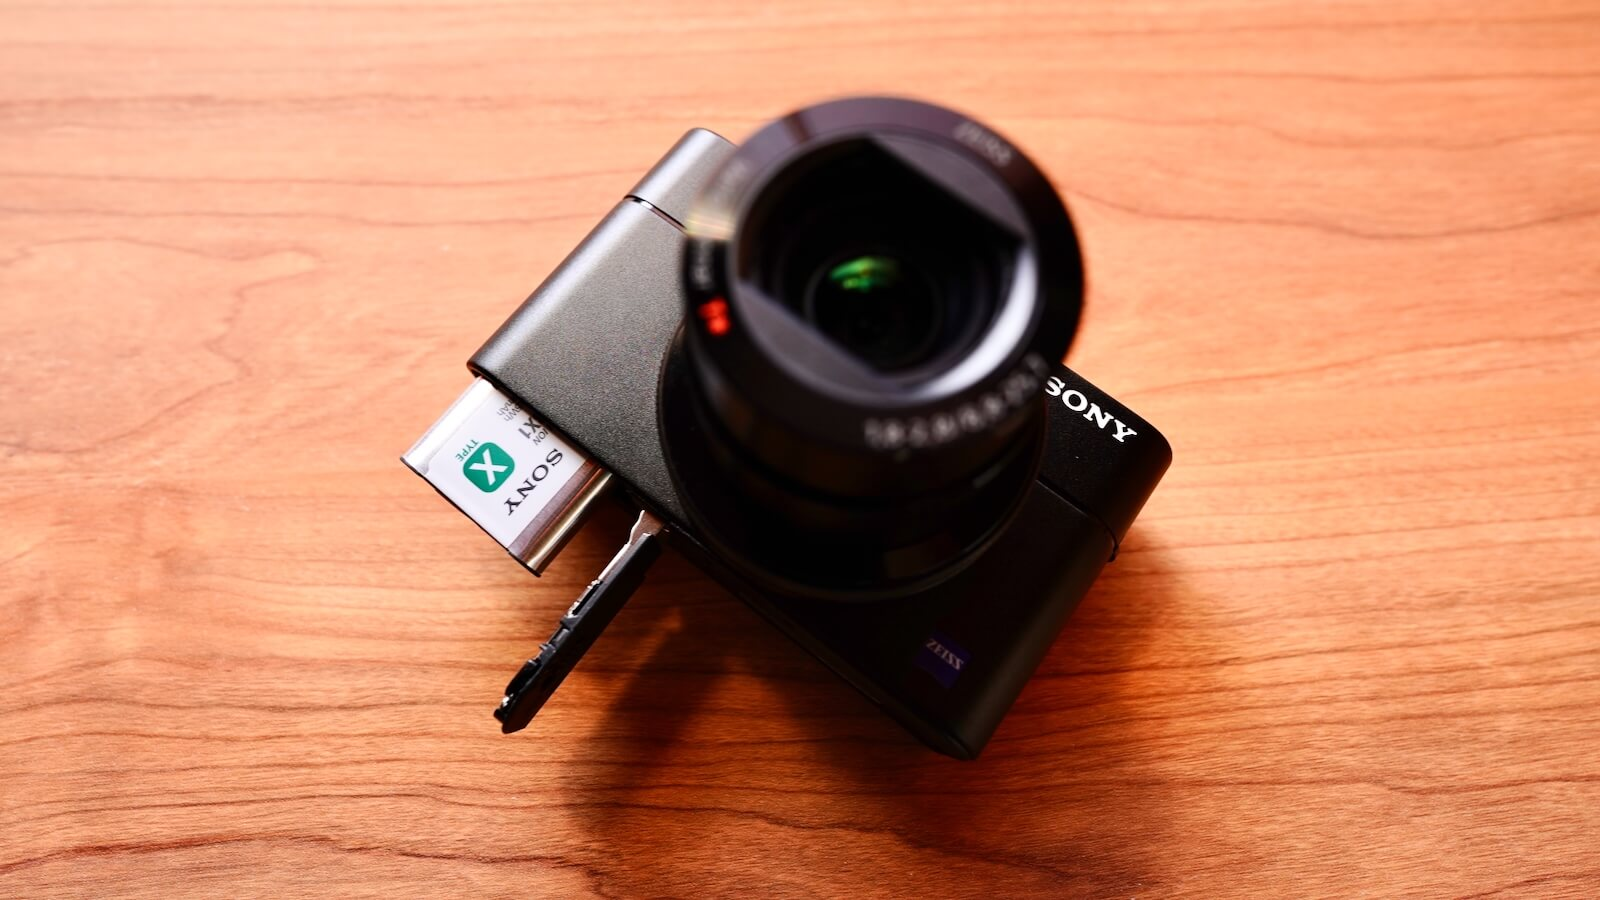 Photo of RX100M5A with battery removed